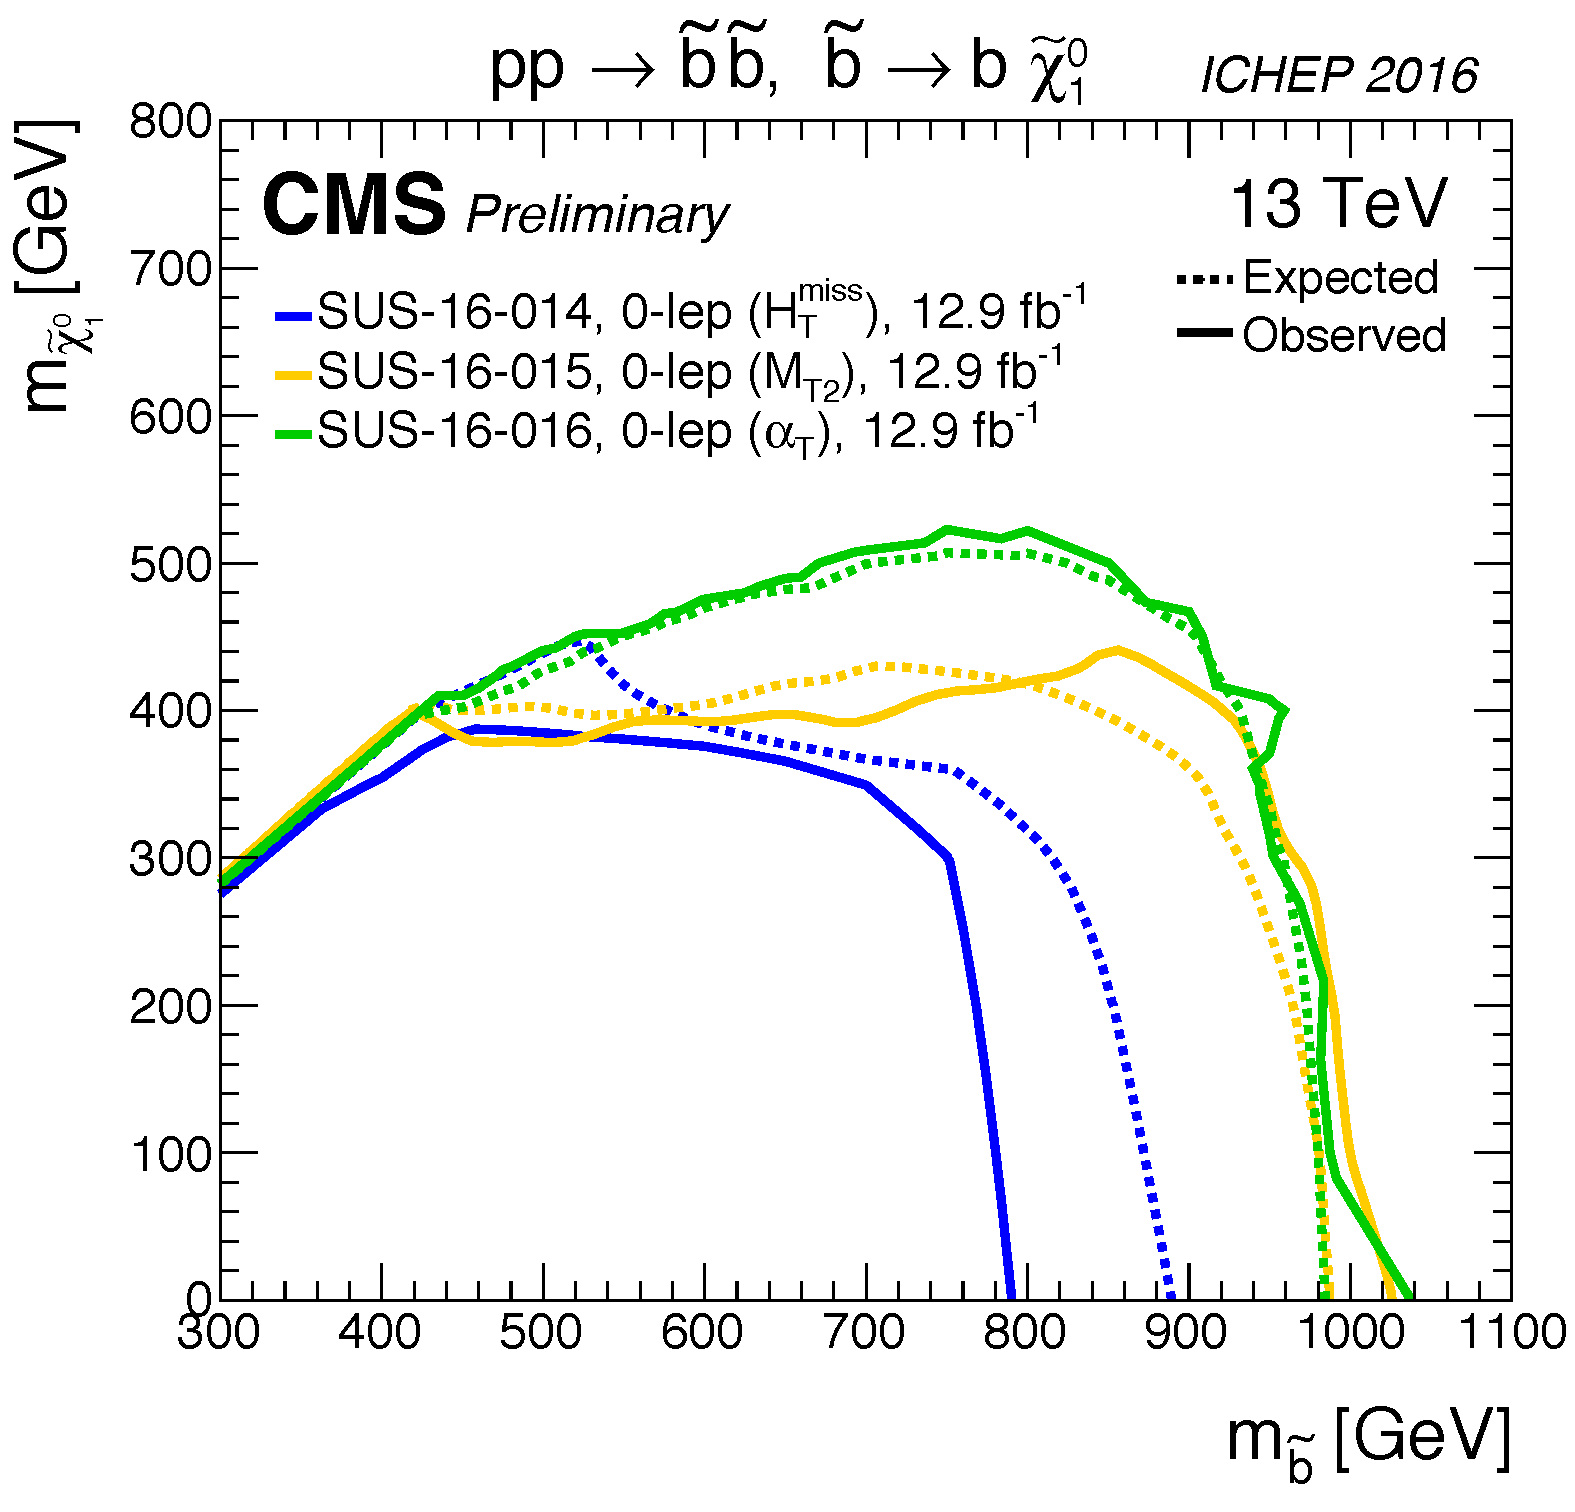 T2bb_limits_summary_cms_ICHEP16.png